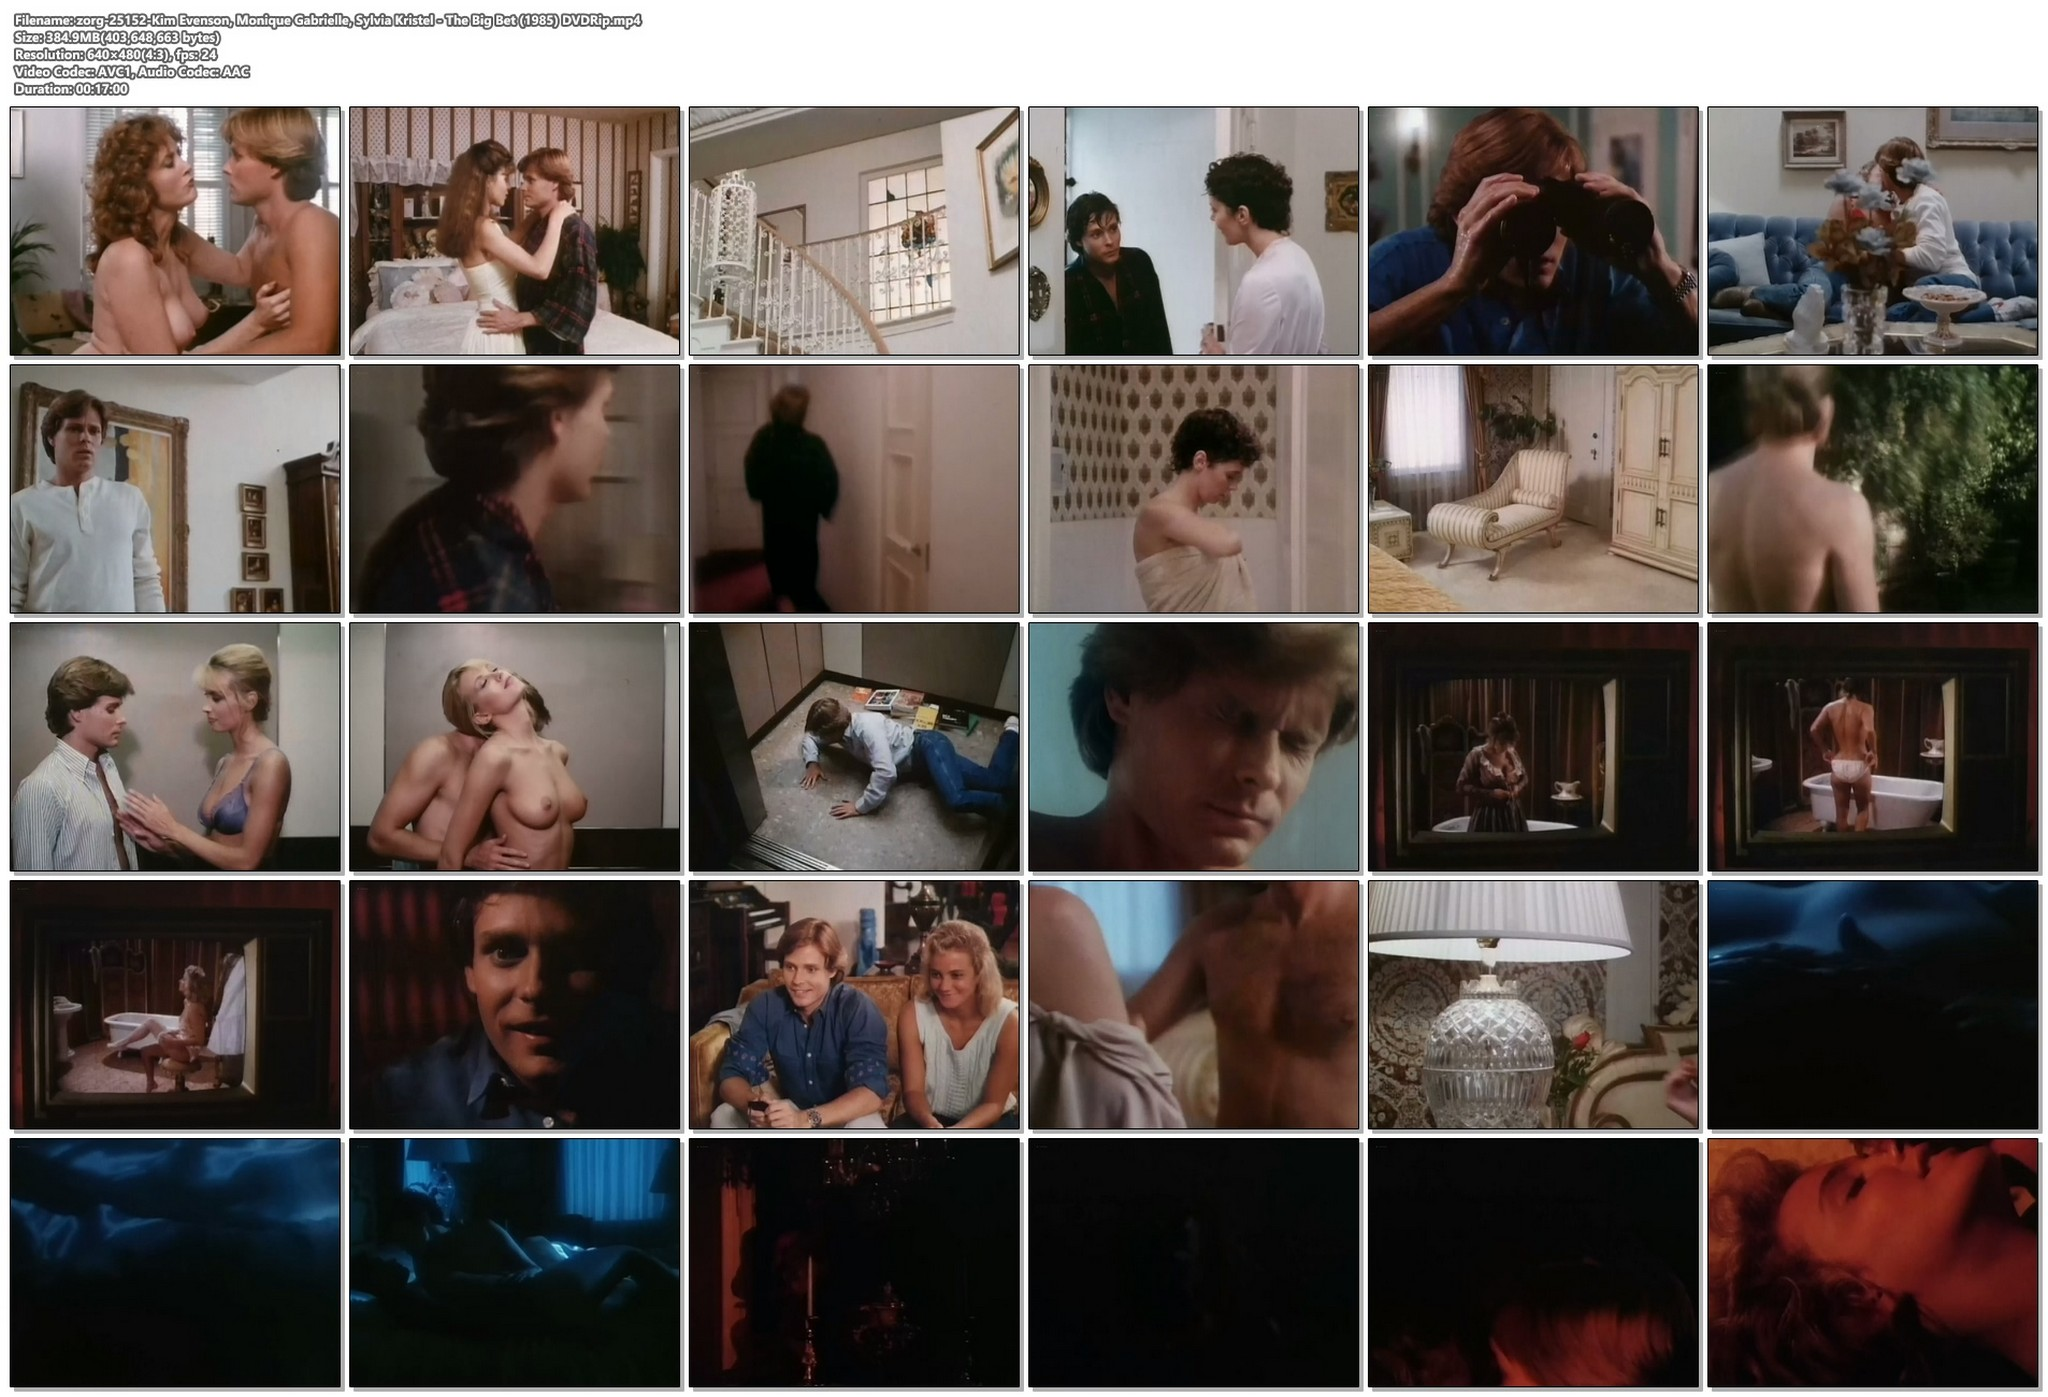 Kim Evenson nude full frontal Monique Gabrielle Sylvia Kristel all nude bush and full frontal The Big Bet 1985 DVDRip 20